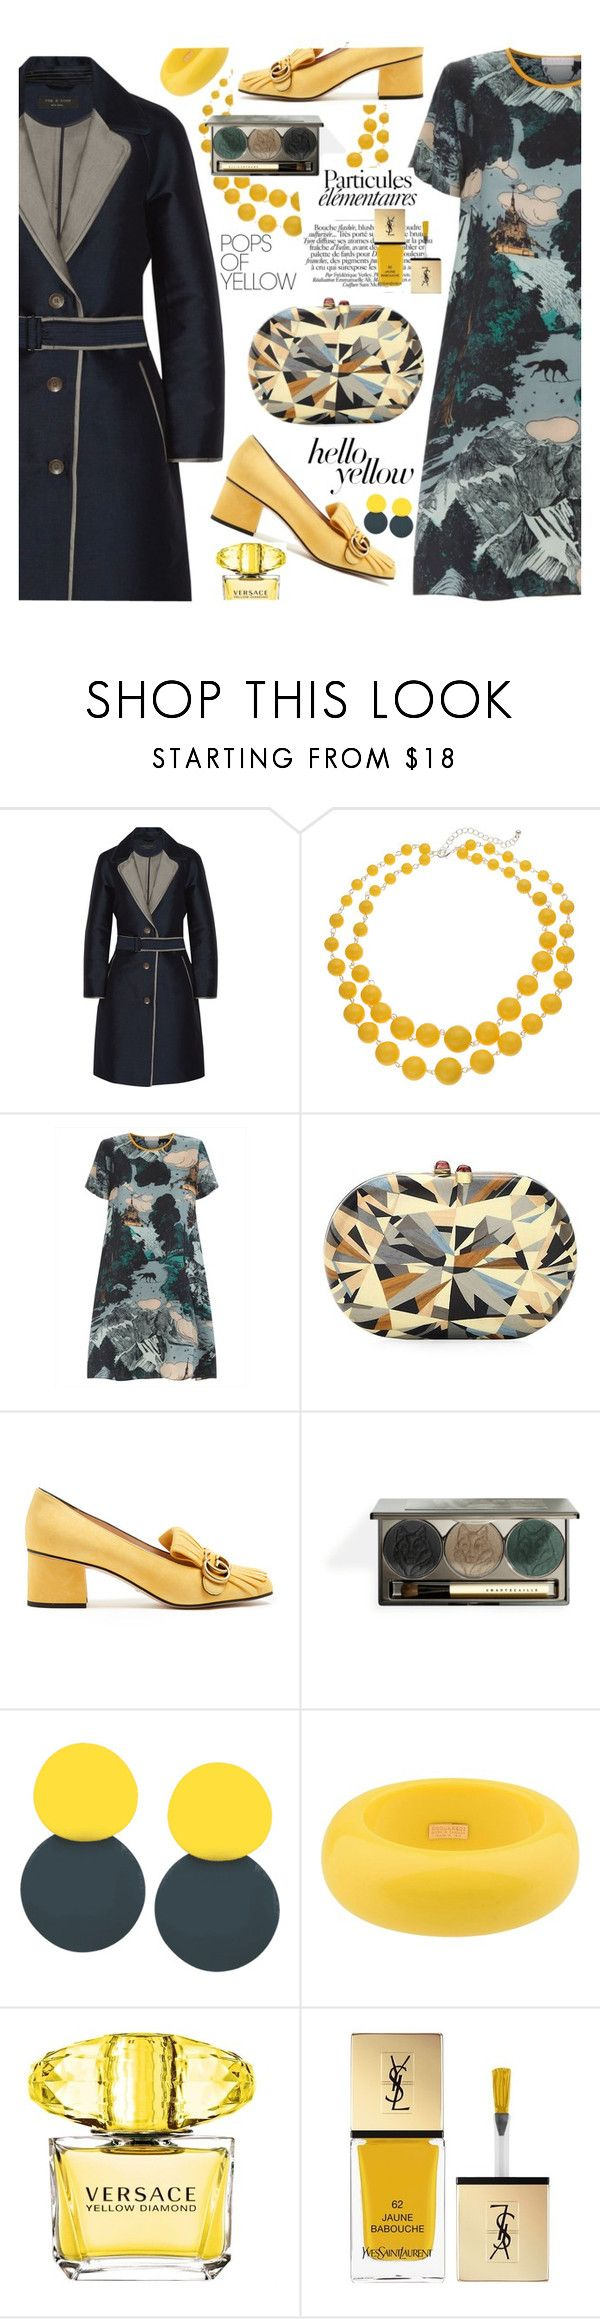 """""""Get Happy, Get the Look!"""" by esch103 on Polyvore featuring rag & bone, Silvia Furmanovich, Gucci, Dsquared2, Versace, Yves Saint Laurent, PopsOfYellow and NYFWYellow"""